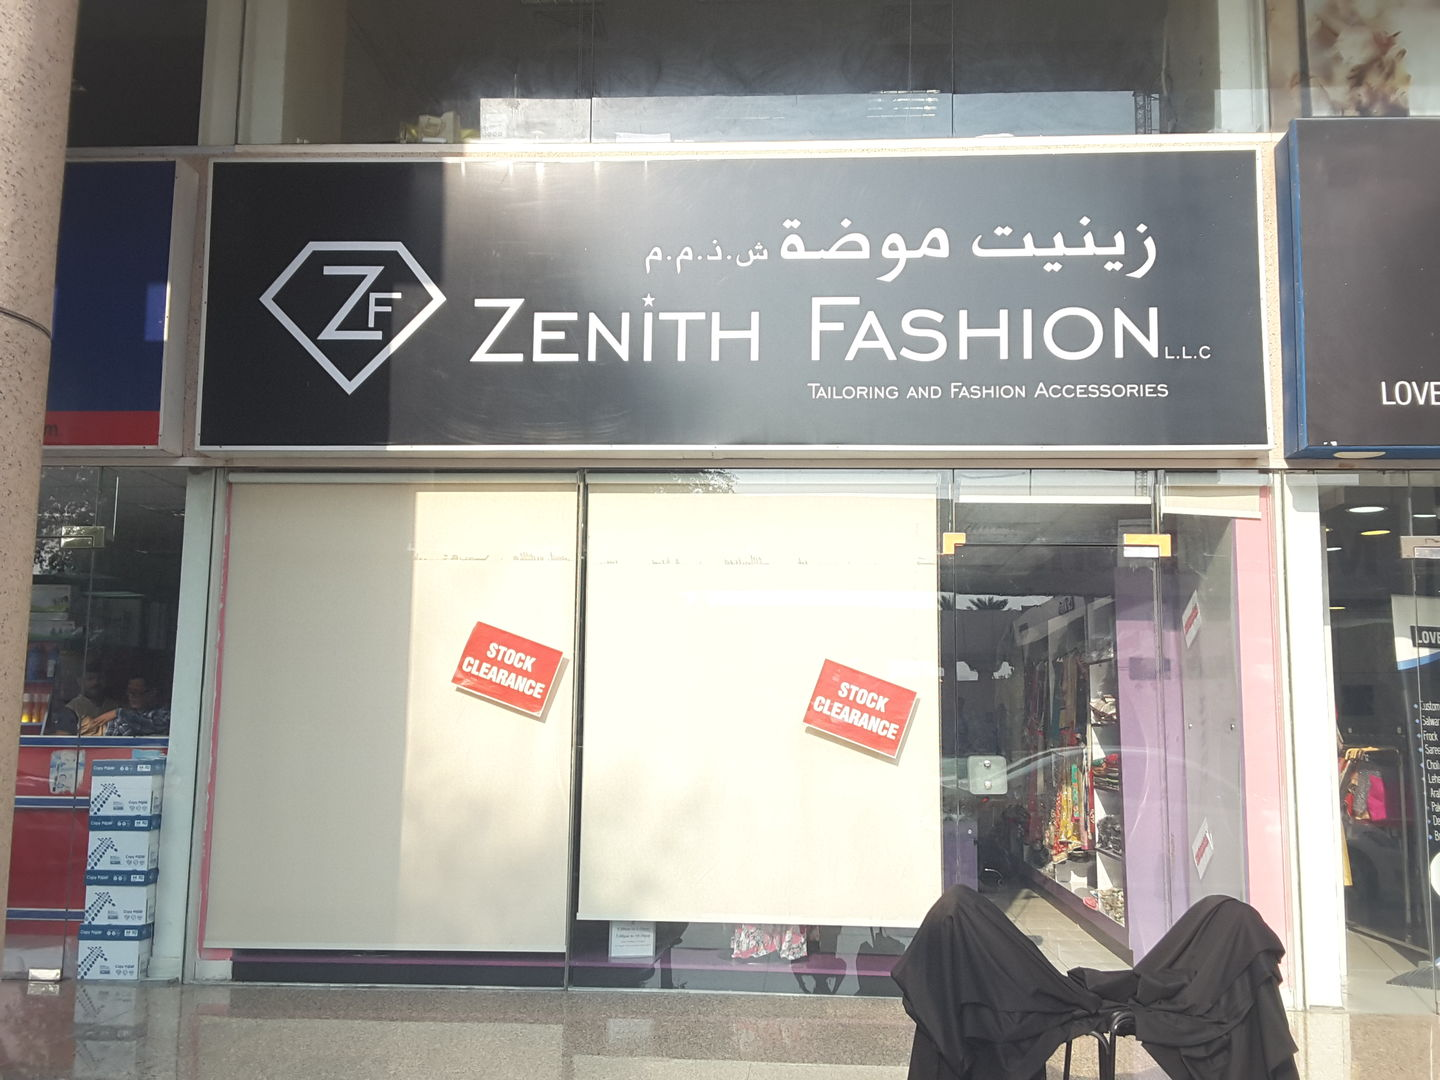 HiDubai-business-zenith-fashion-shopping-apparel-al-fahidi-al-souq-al-kabeer-dubai-2